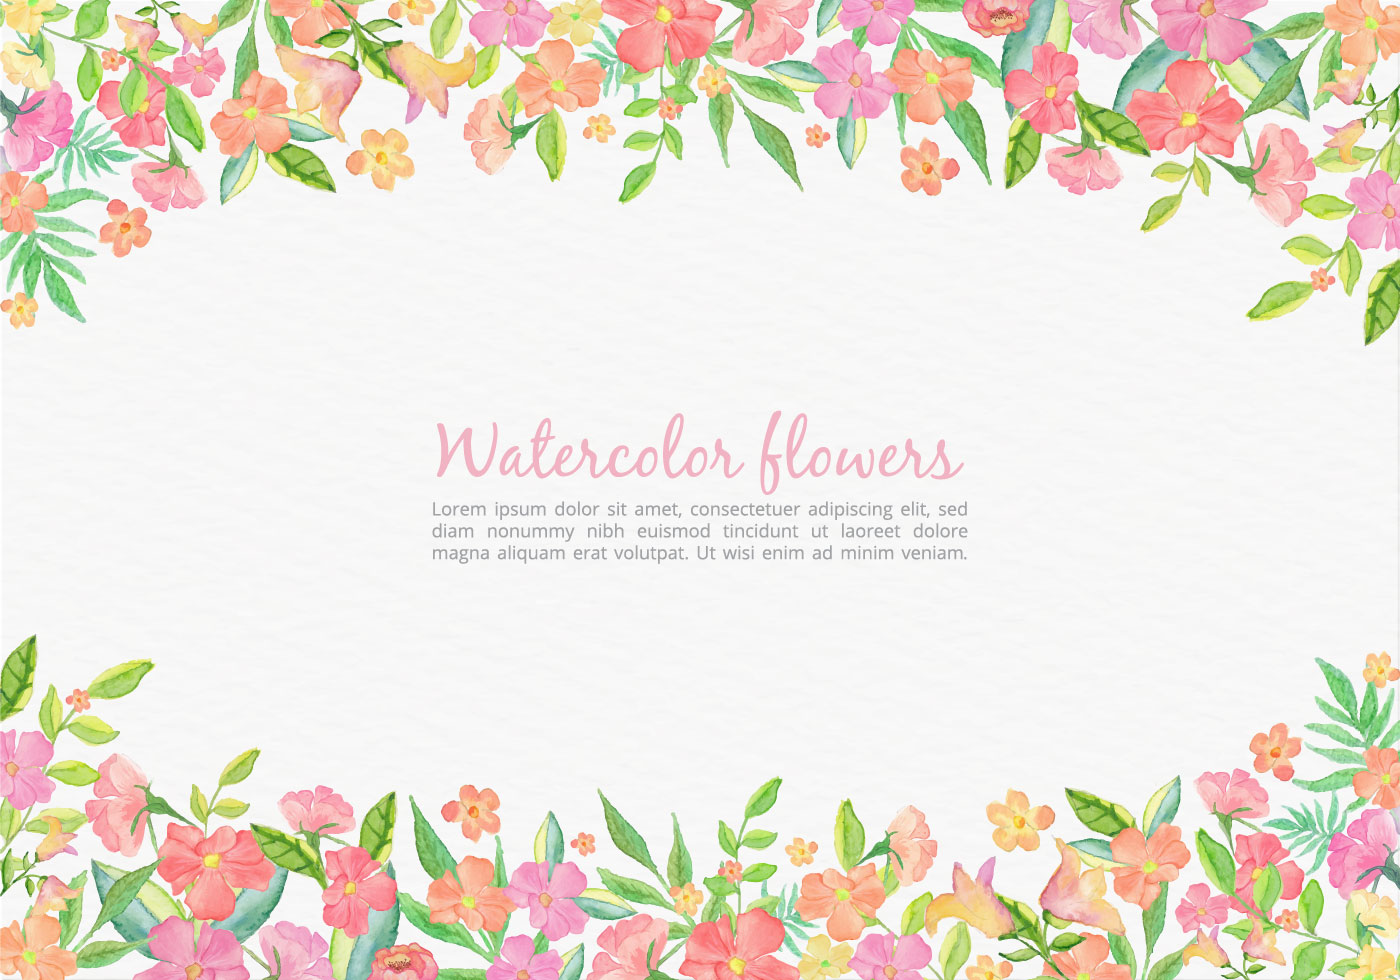 Floral background design 30 000 free beautiful files - Floral background ...